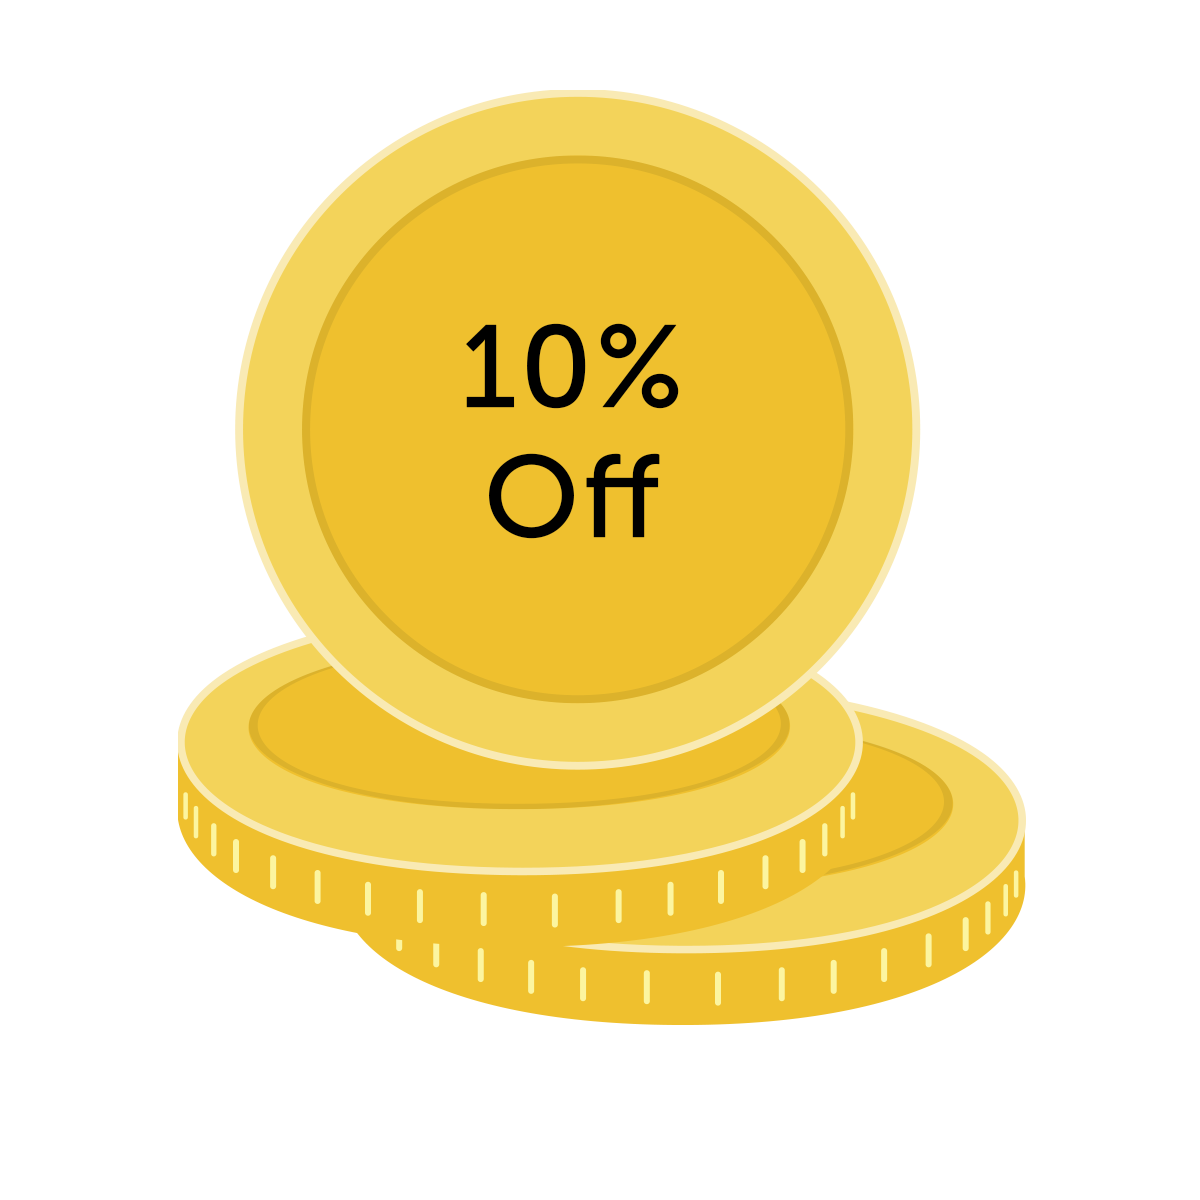 10% off coupon for 500 Coins